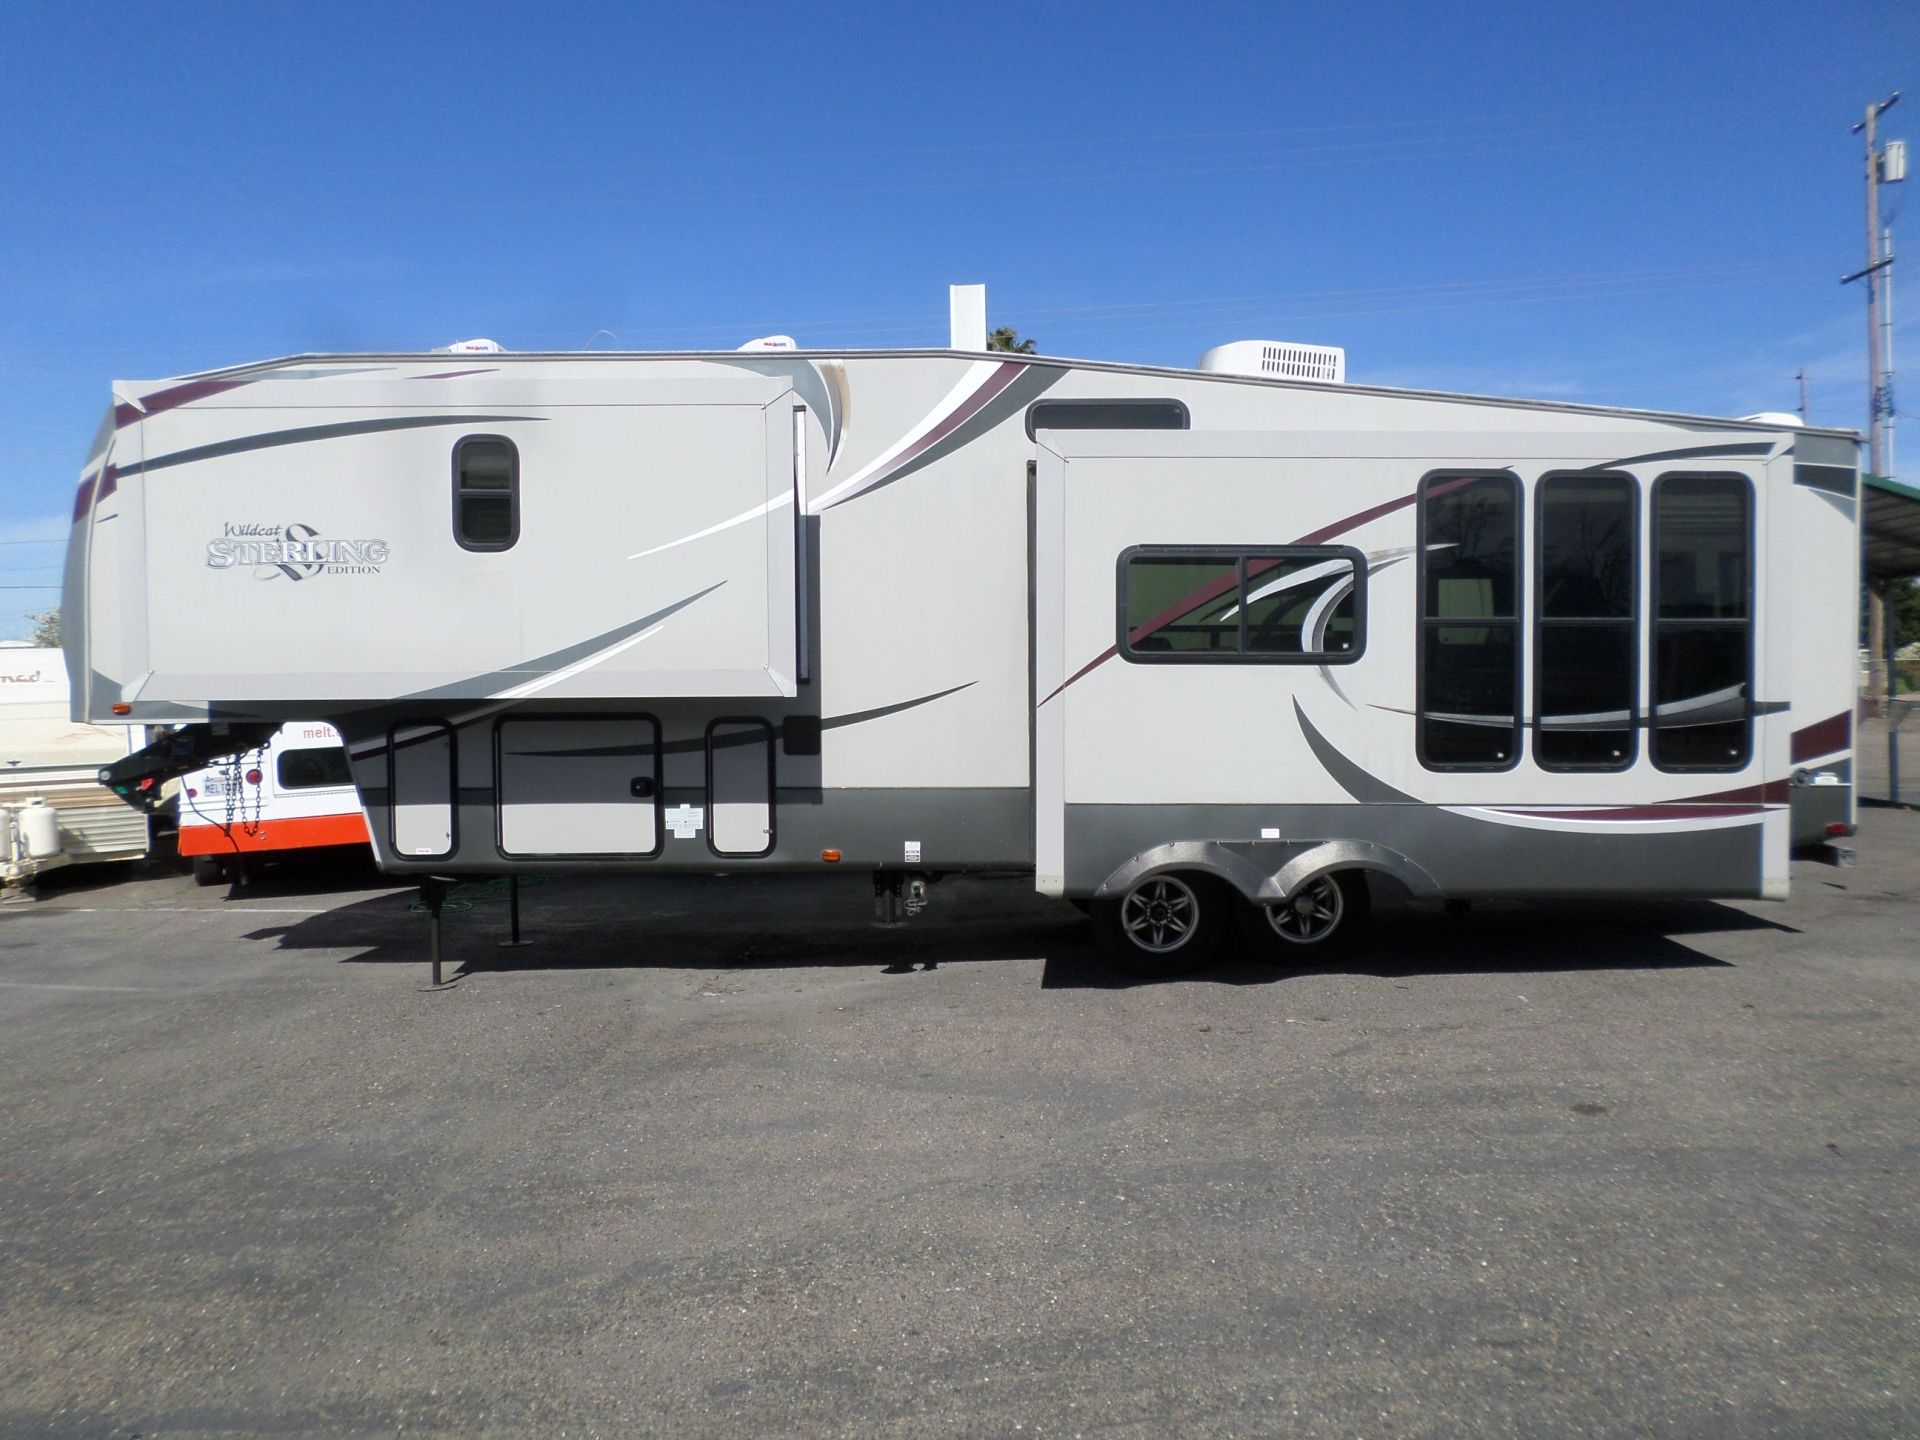 43+ Used 5th wheel campers for sale by owner near me best